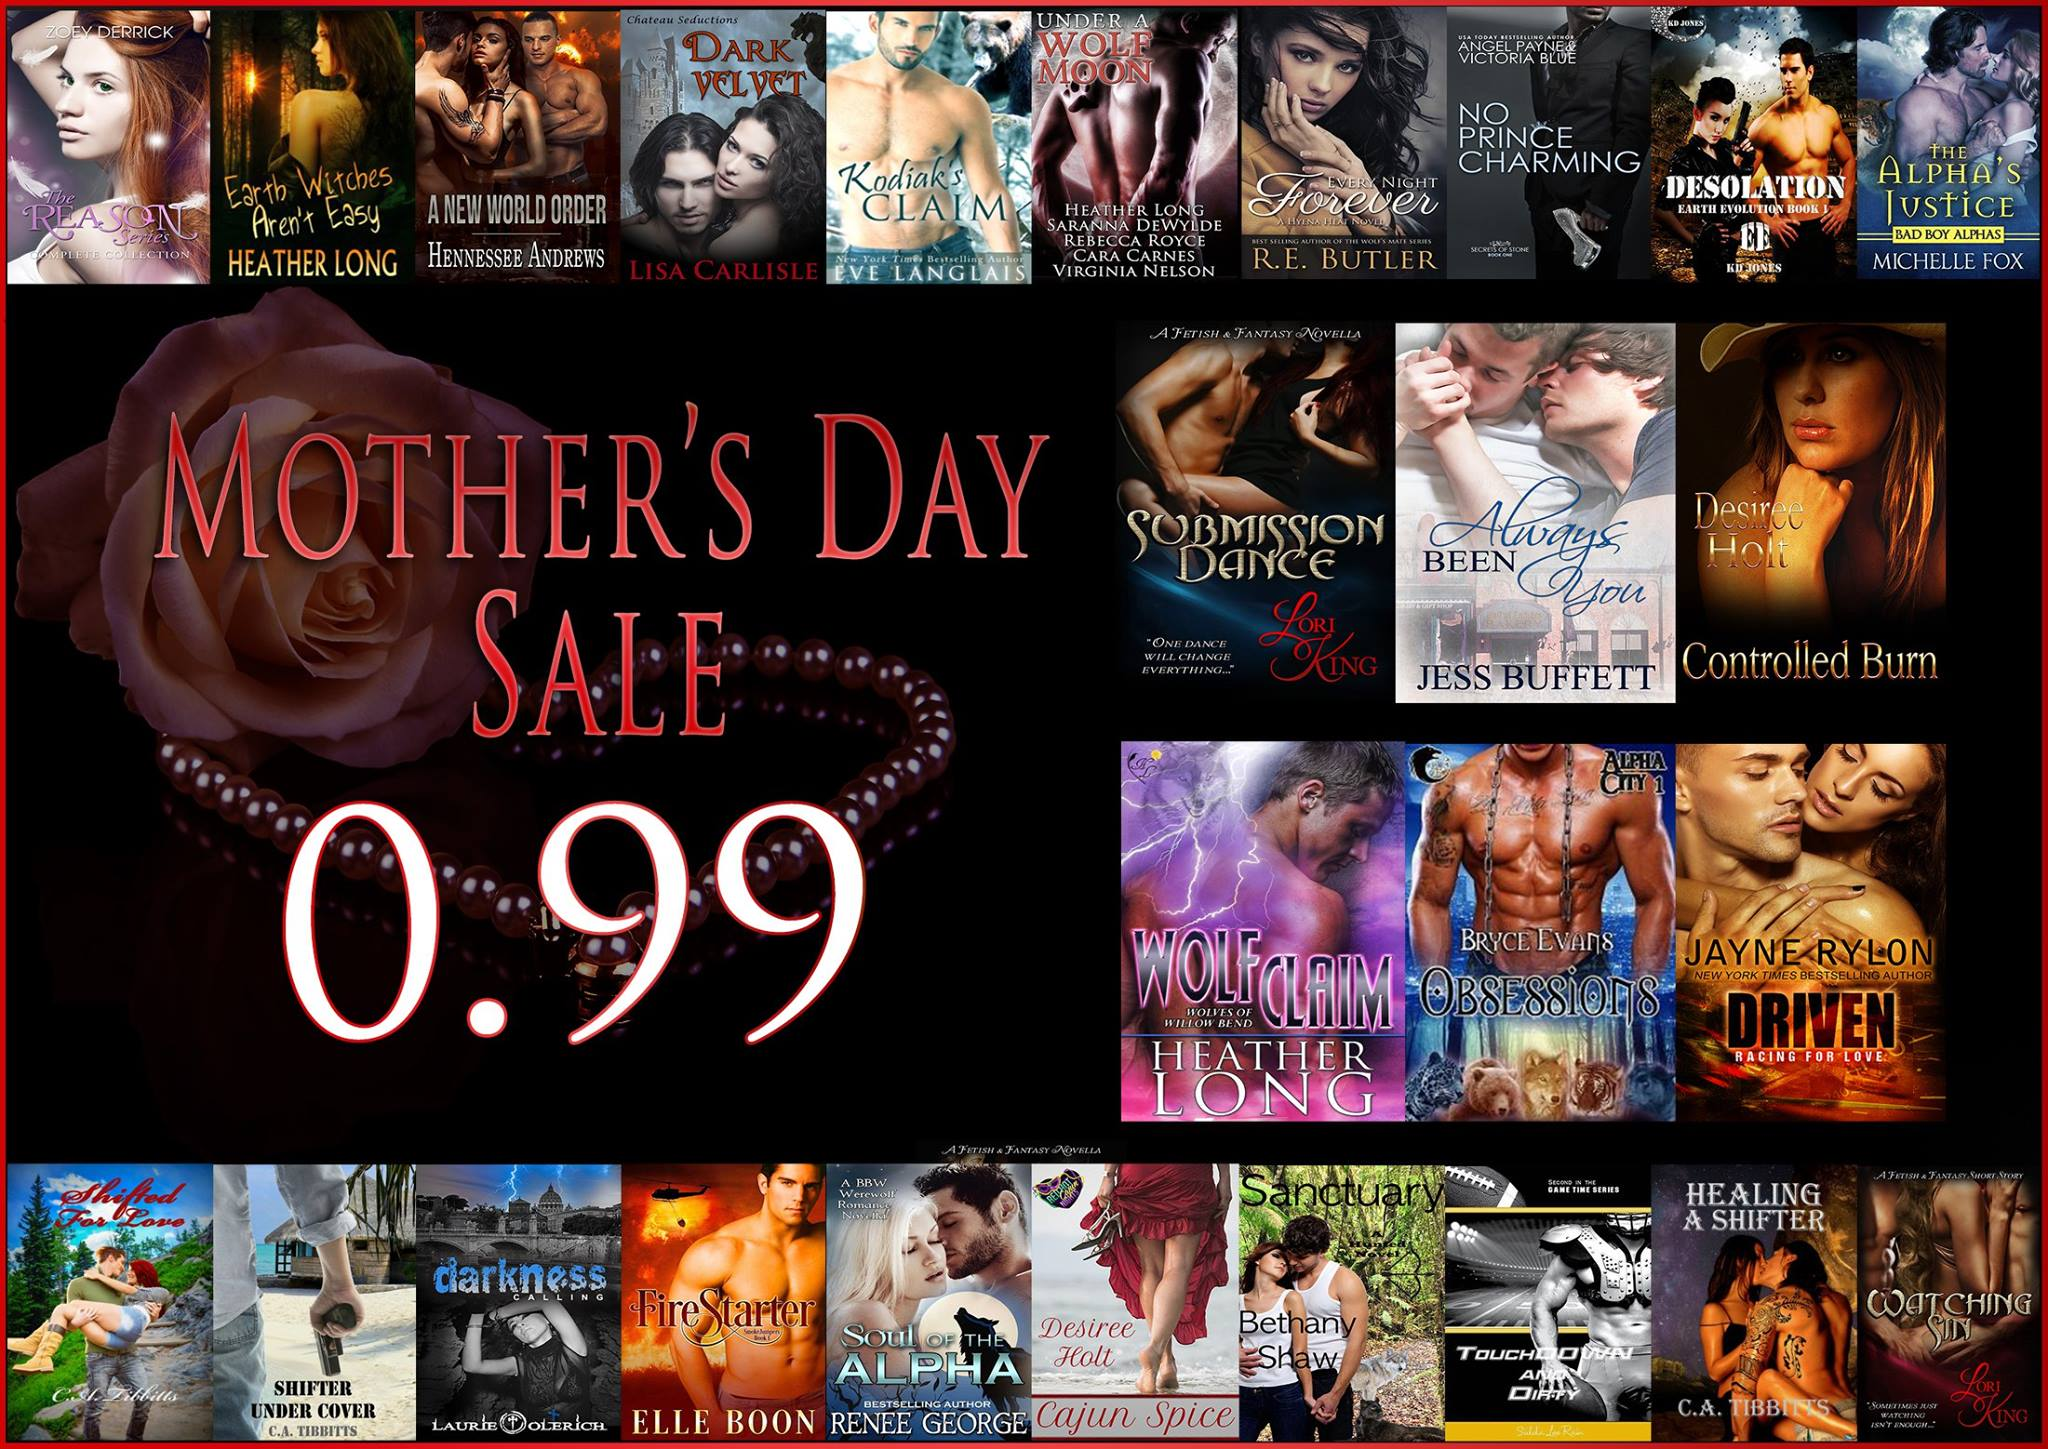 Big Mother's Day Bargain Sale May 9-12